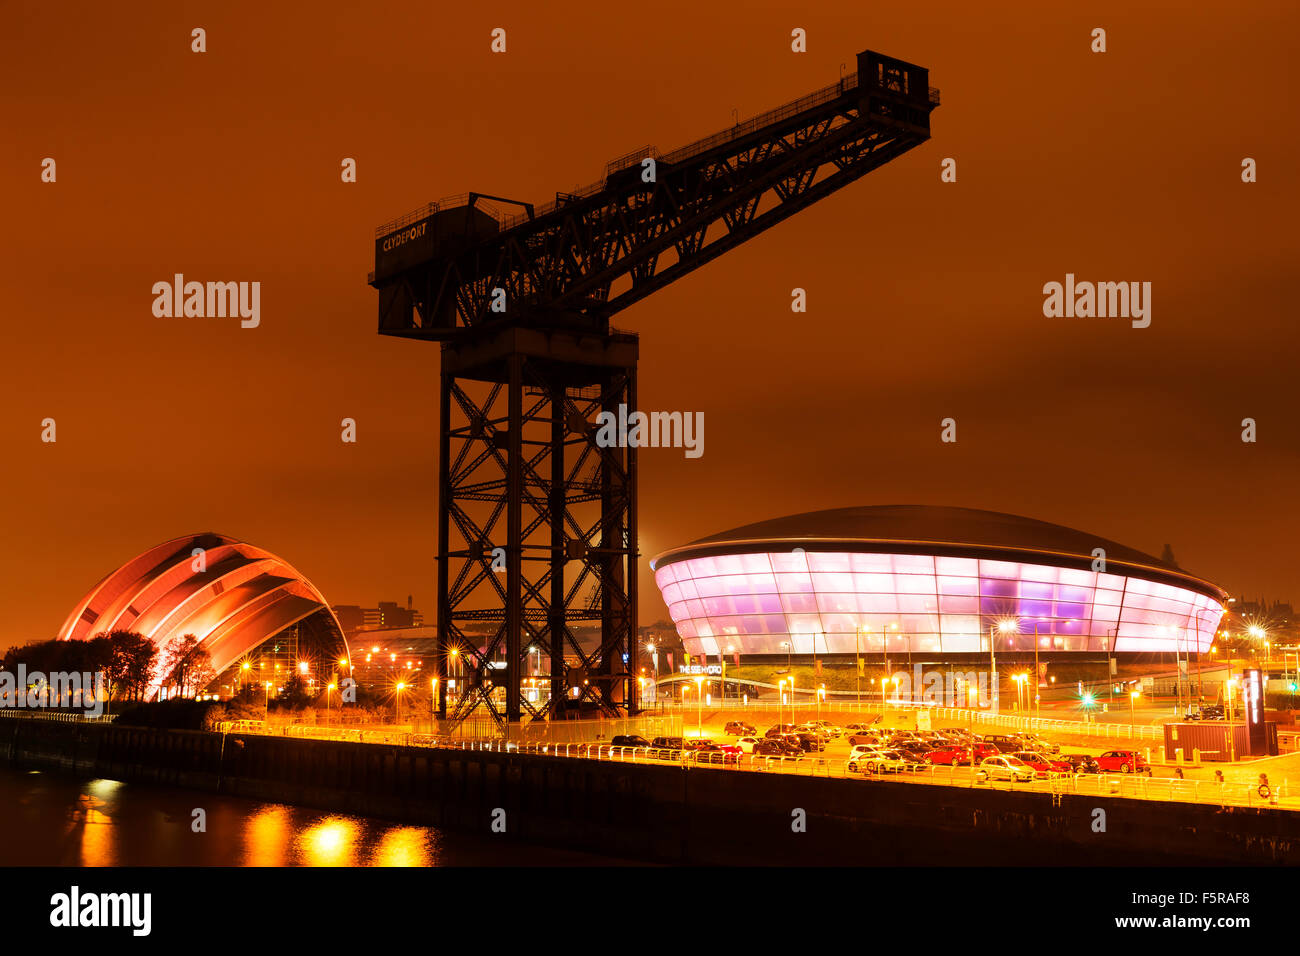 GLASGOW, SCOTLAND. OCTOBER 27 2015 : The SSC Hydro Stadium Illuminated at Night on the banks of River Clyde, Glasgow, - Stock Image